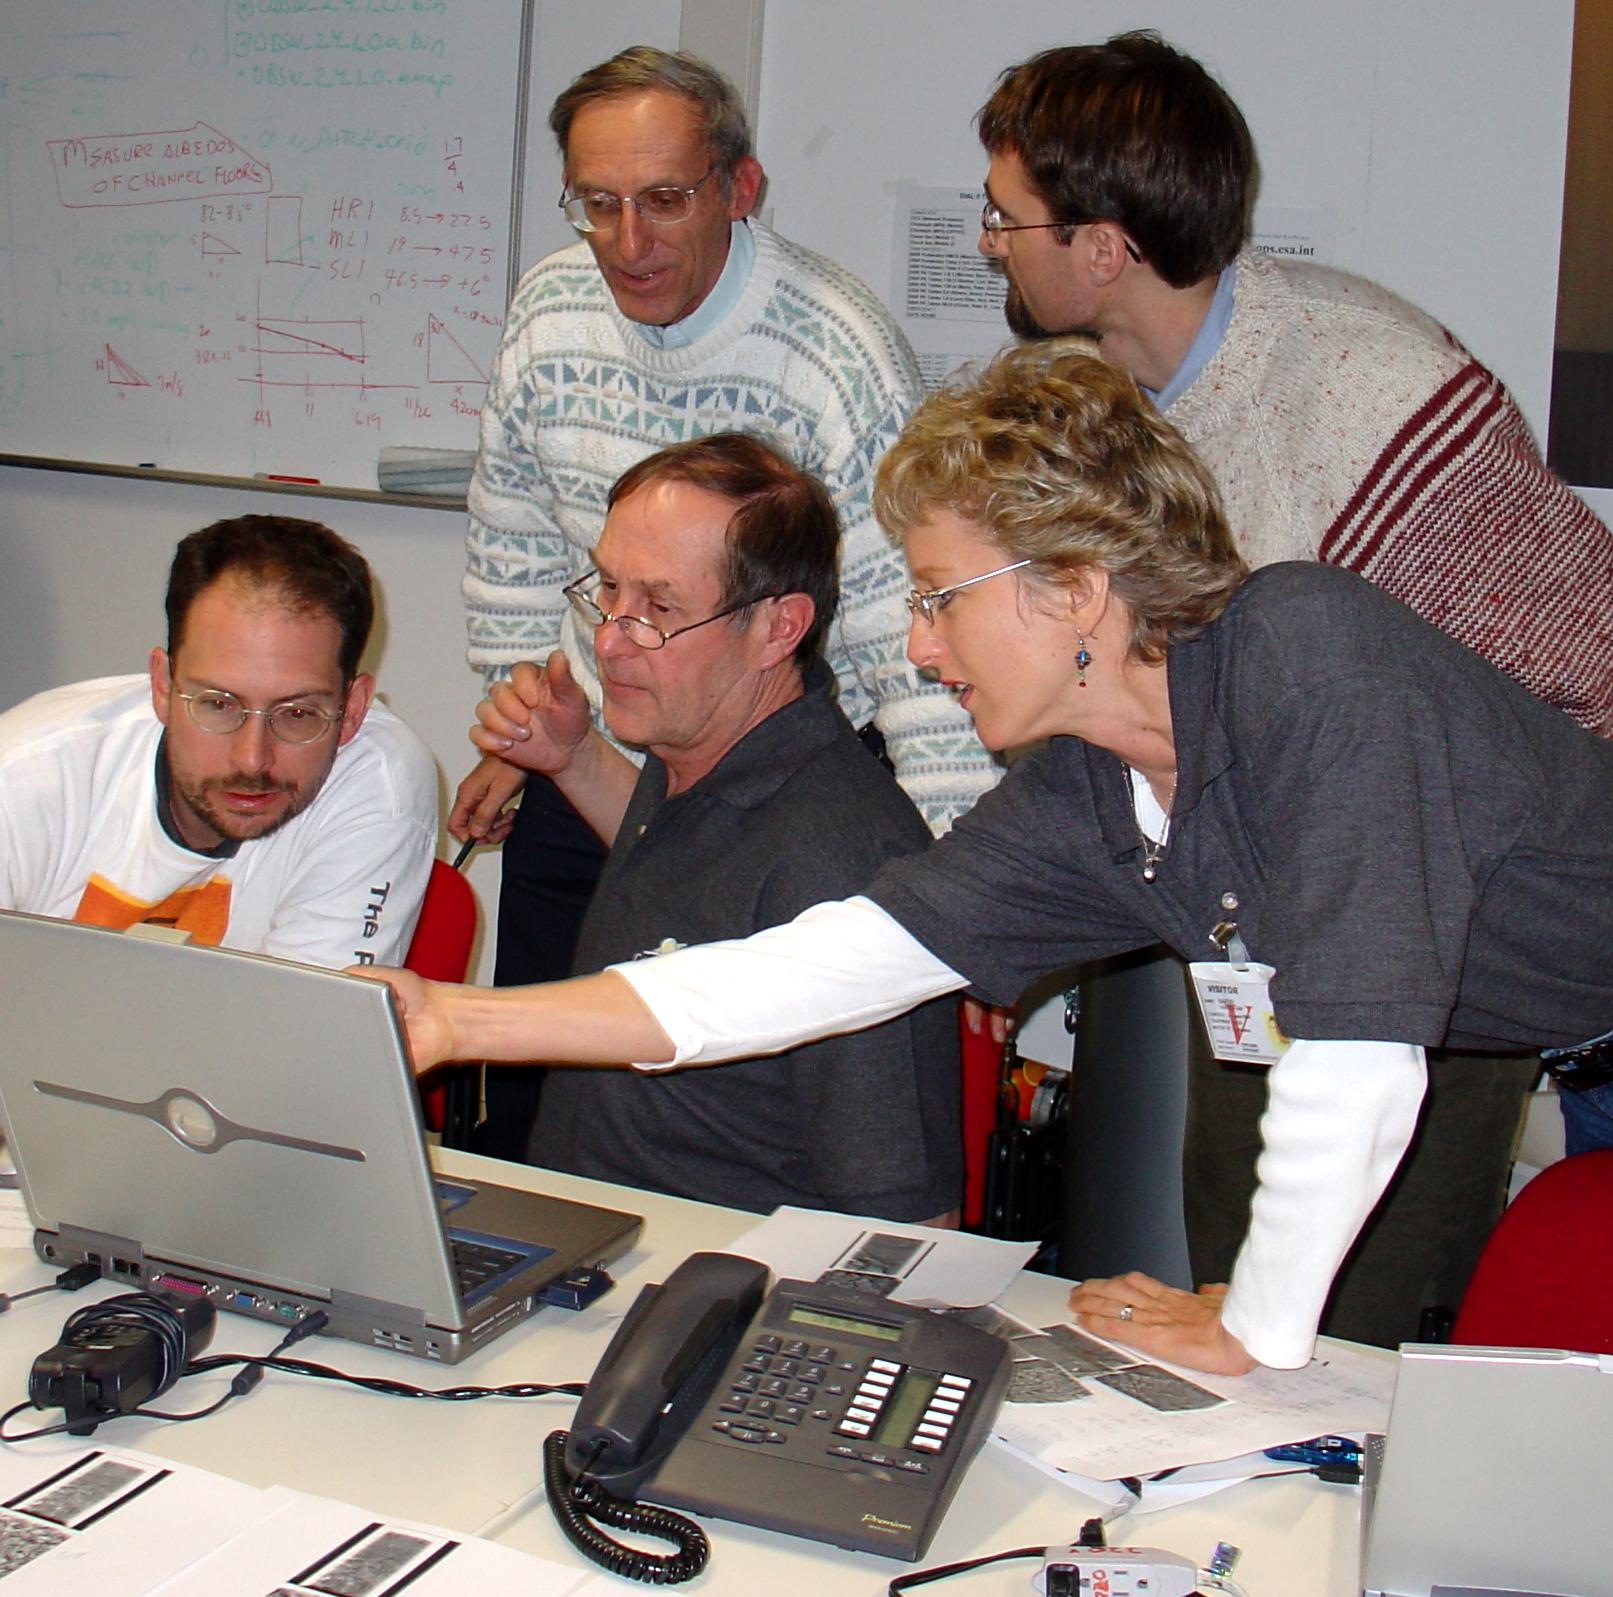 Five scientists gathered around a laptop looking at Huygens data